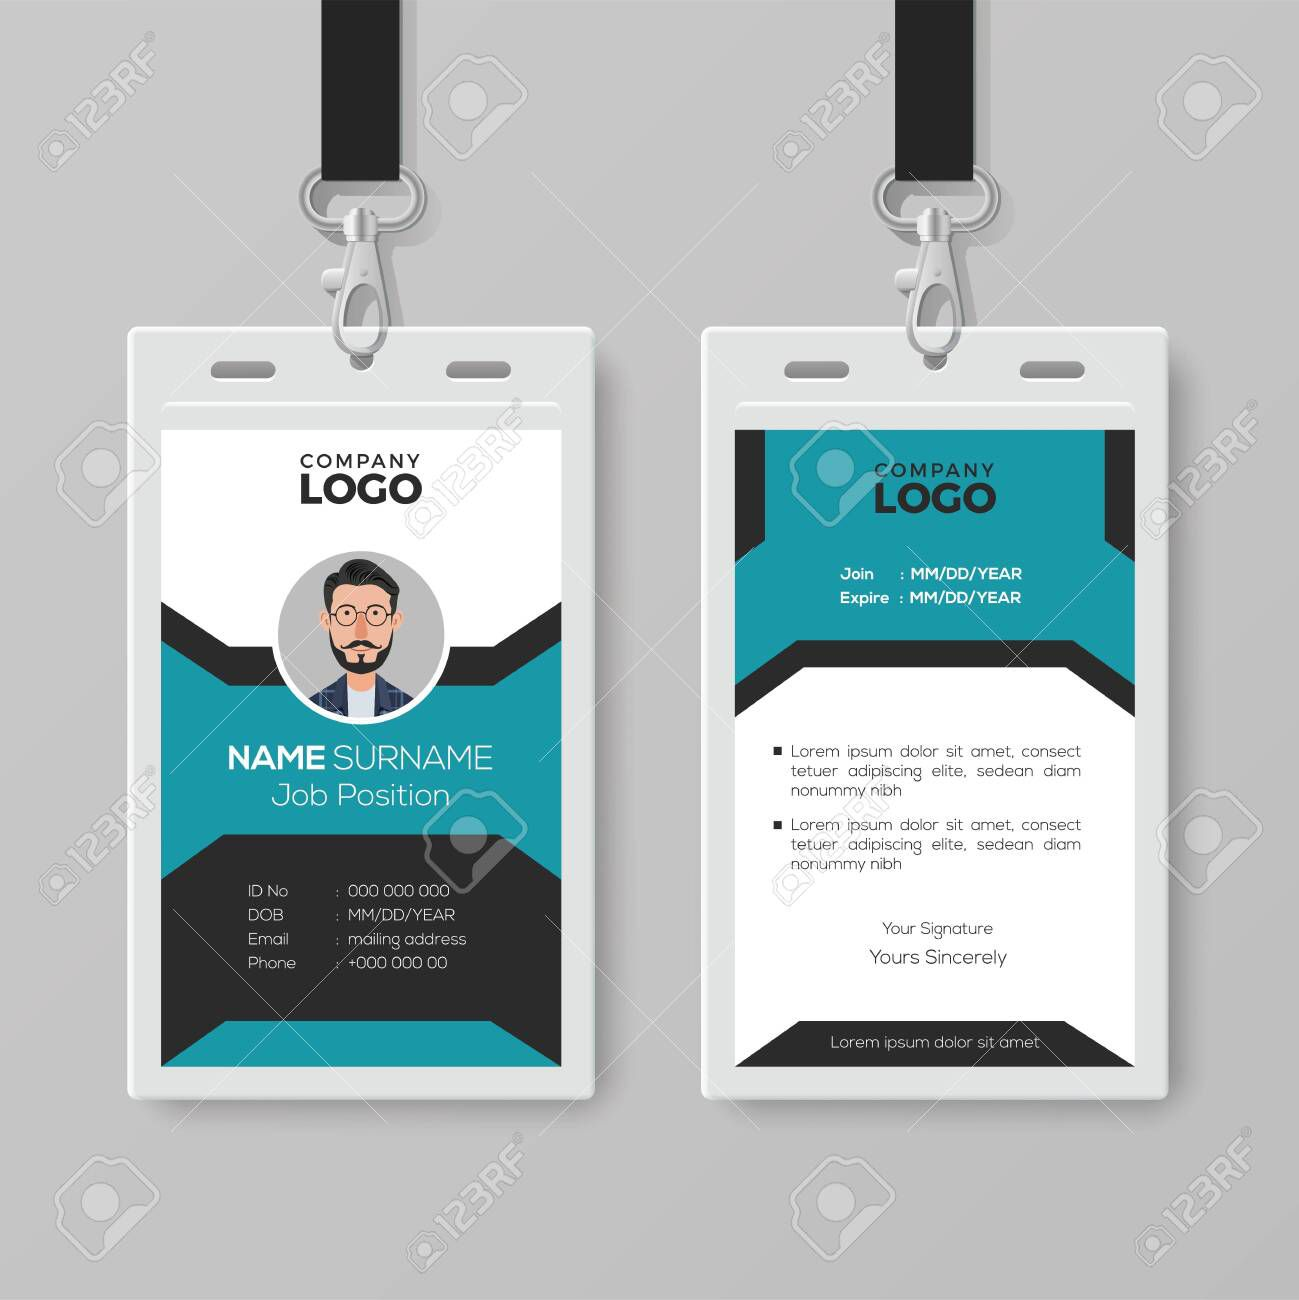 003 Impressive Employee Id Badge Template Highest Clarity  Avery Card Free Download WordFull